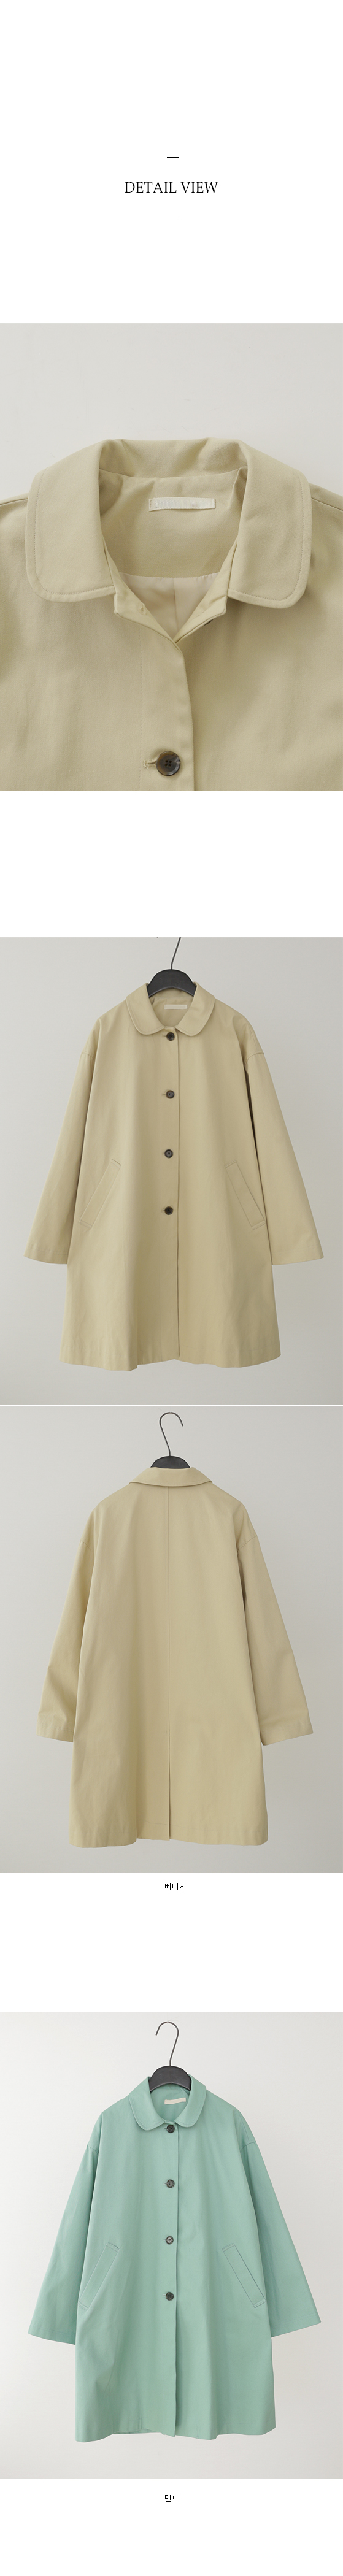 adorable silhouette coat